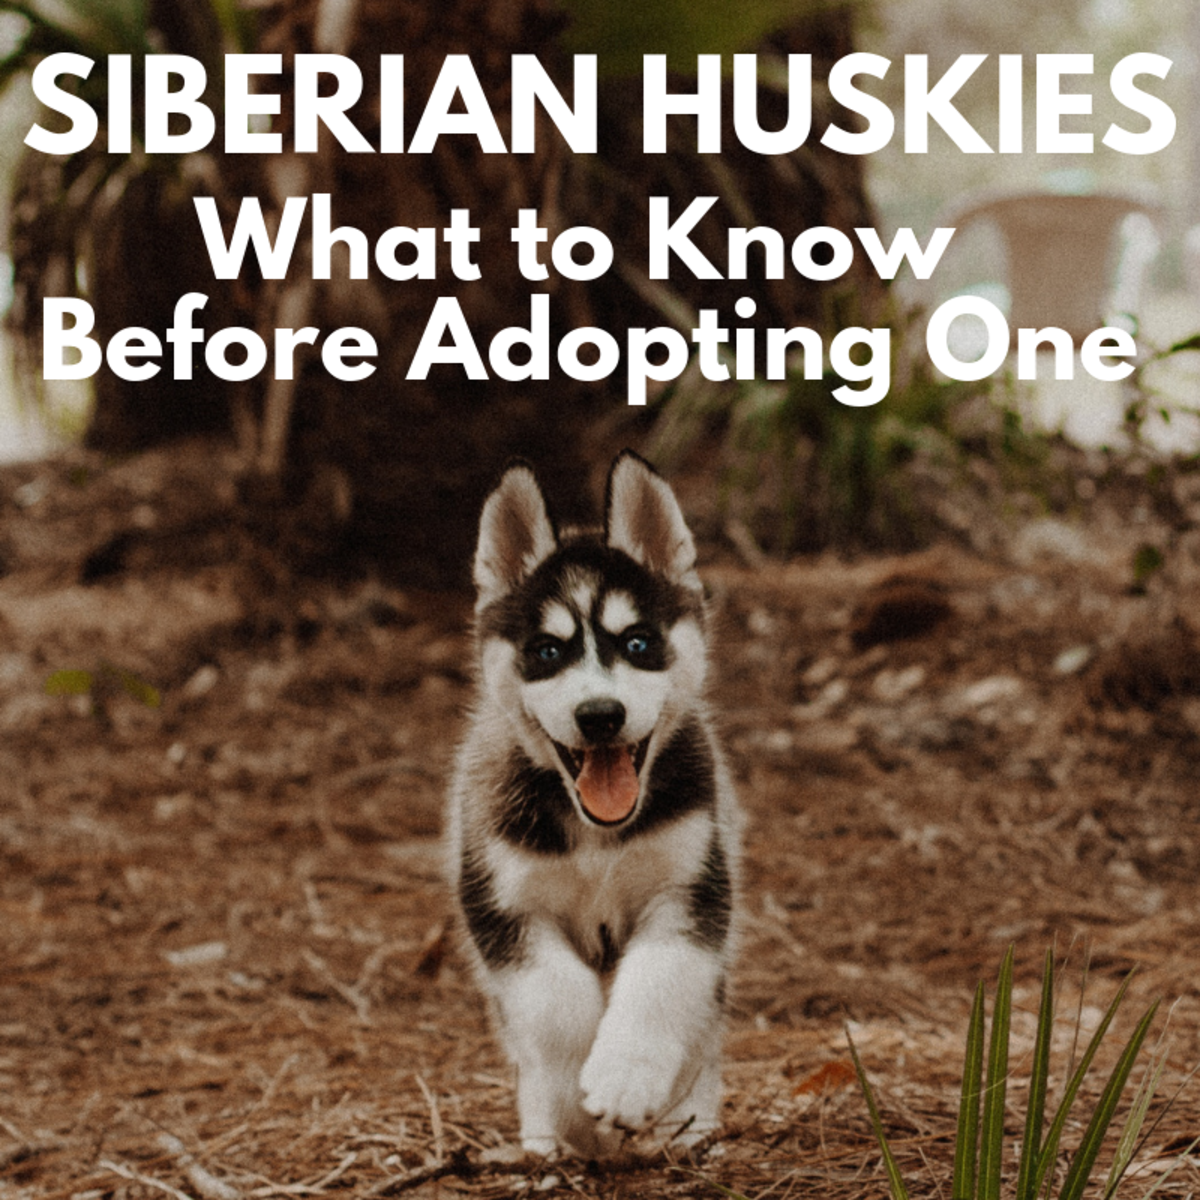 Huskies make great companions, but before taking the plunge, be sure you know what you are getting into.